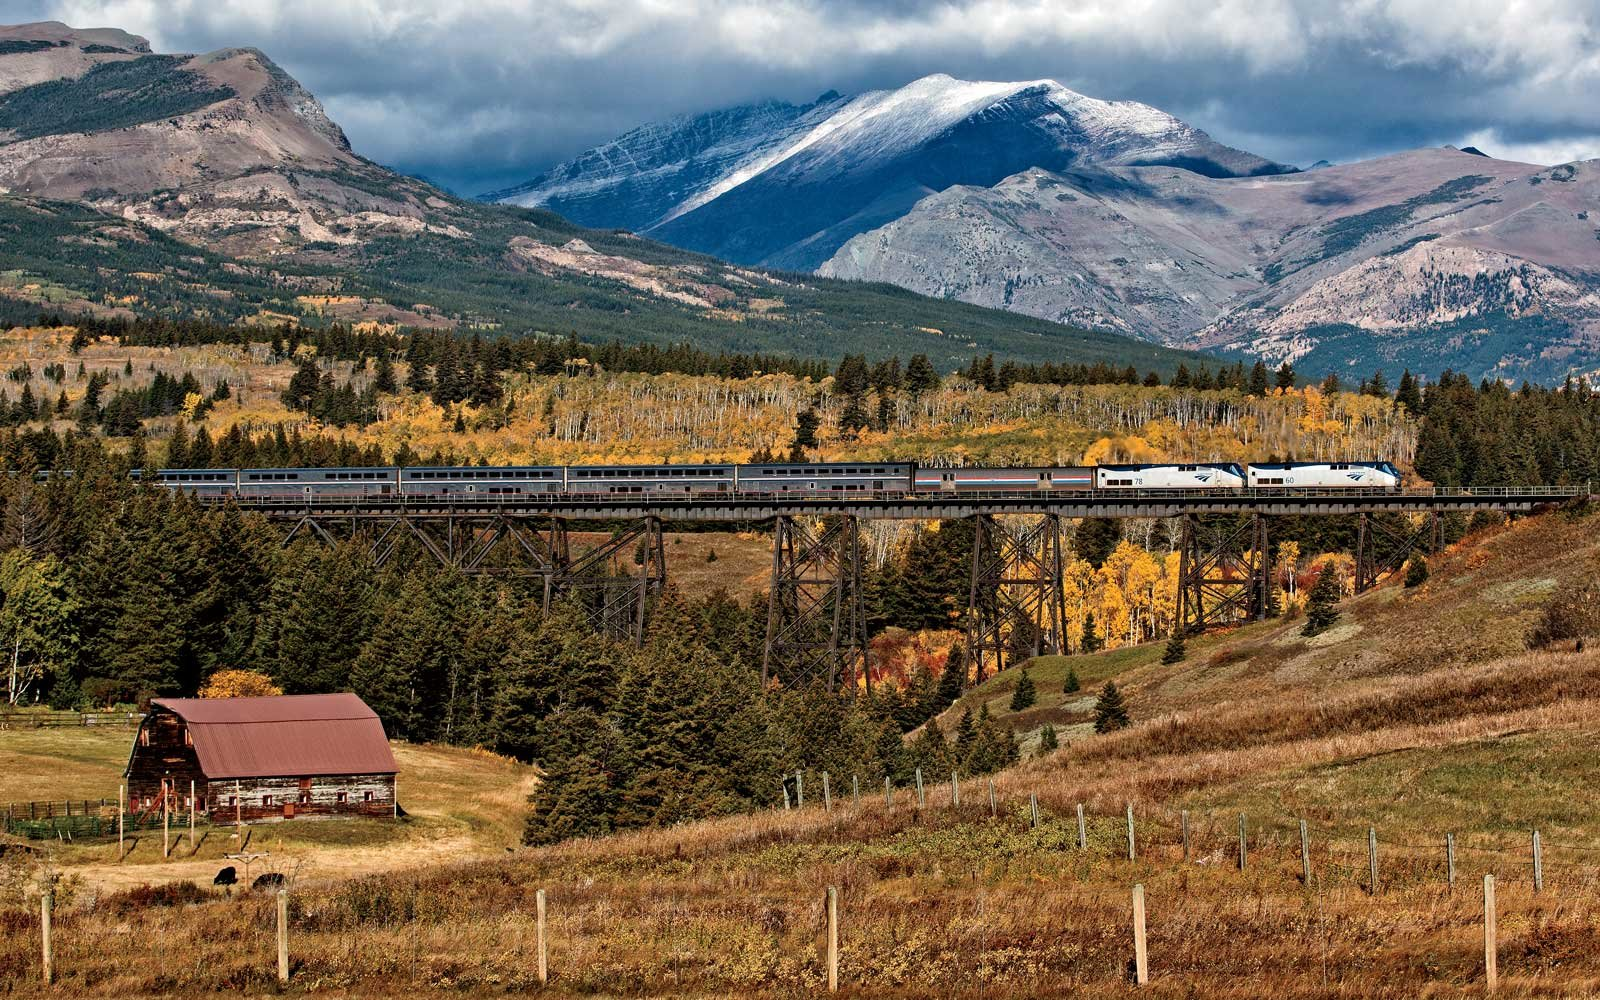 You Can See America's Most Stunning Sights By Purchasing a Single Amtrak Ticket